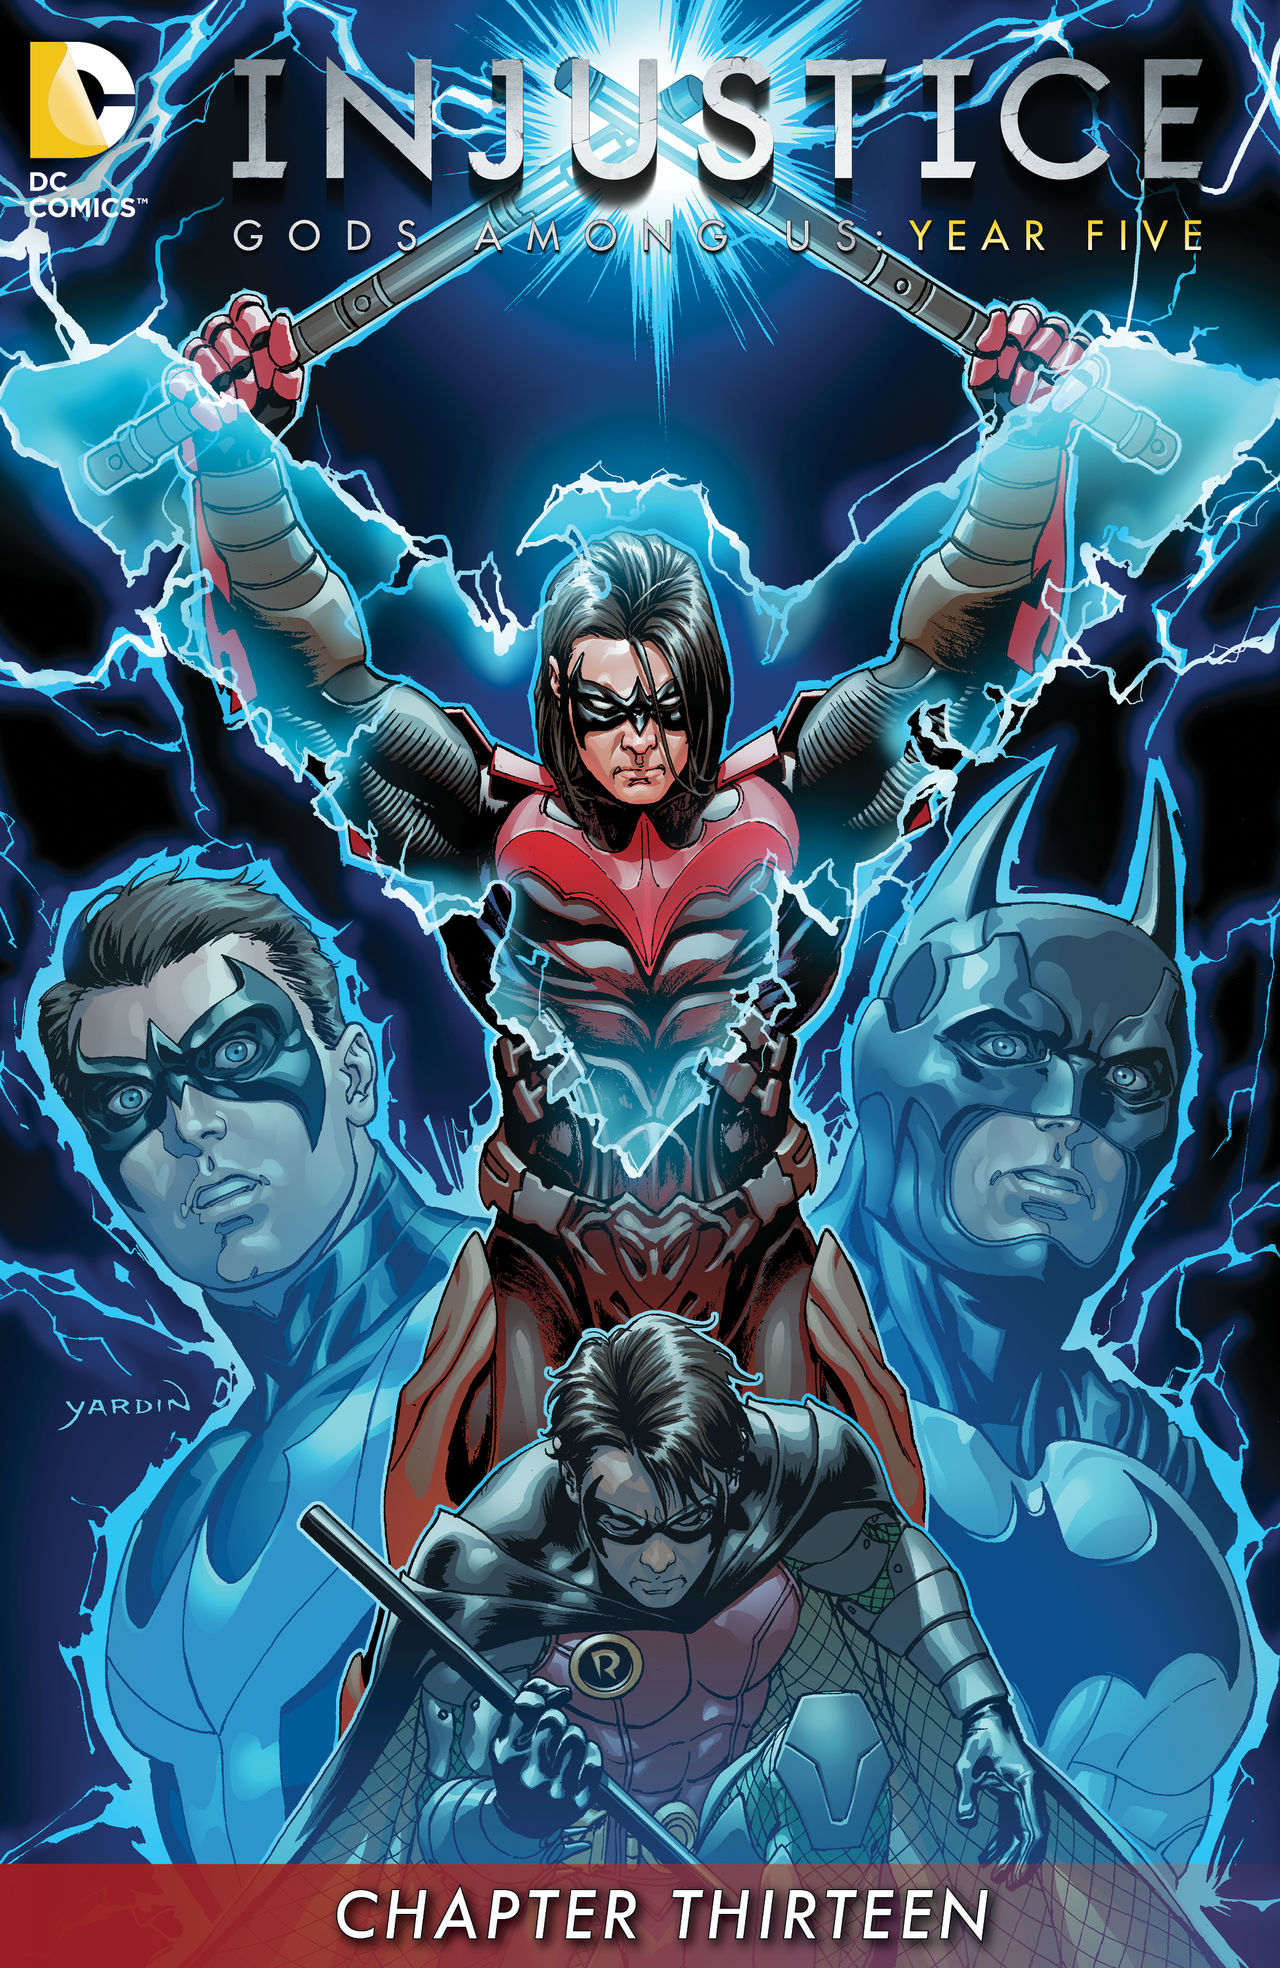 Exclusive preview: Injustice: Gods Among Us: Year Five ... Nightwing Injustice Comic